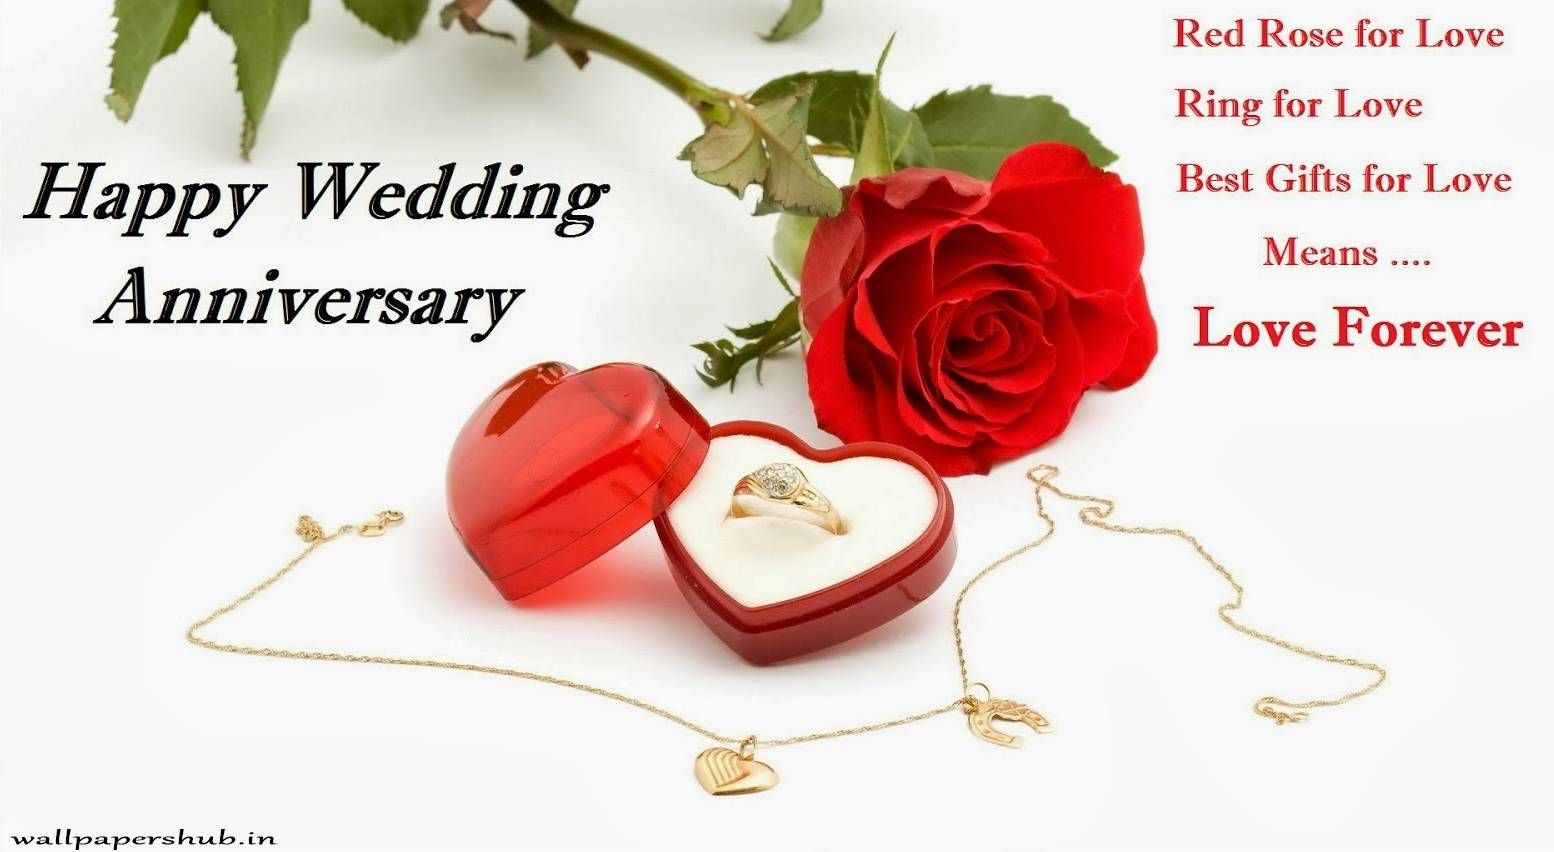 Rose ring anniversary Messages (Anniversary) Pinterest